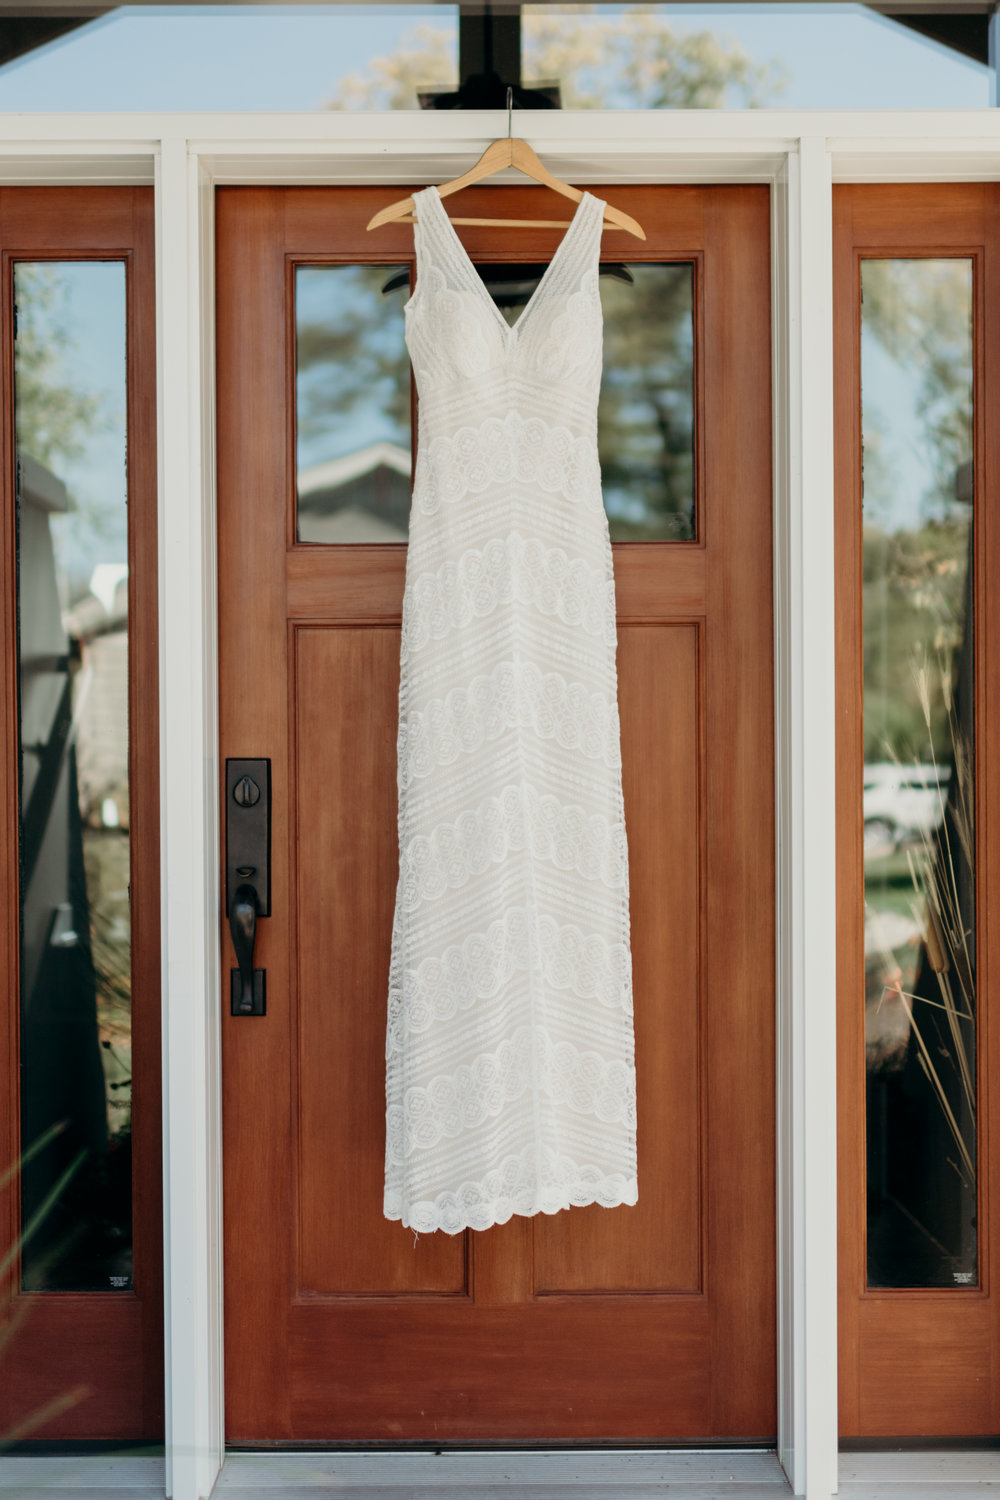 Wedding dress hanging from a door.